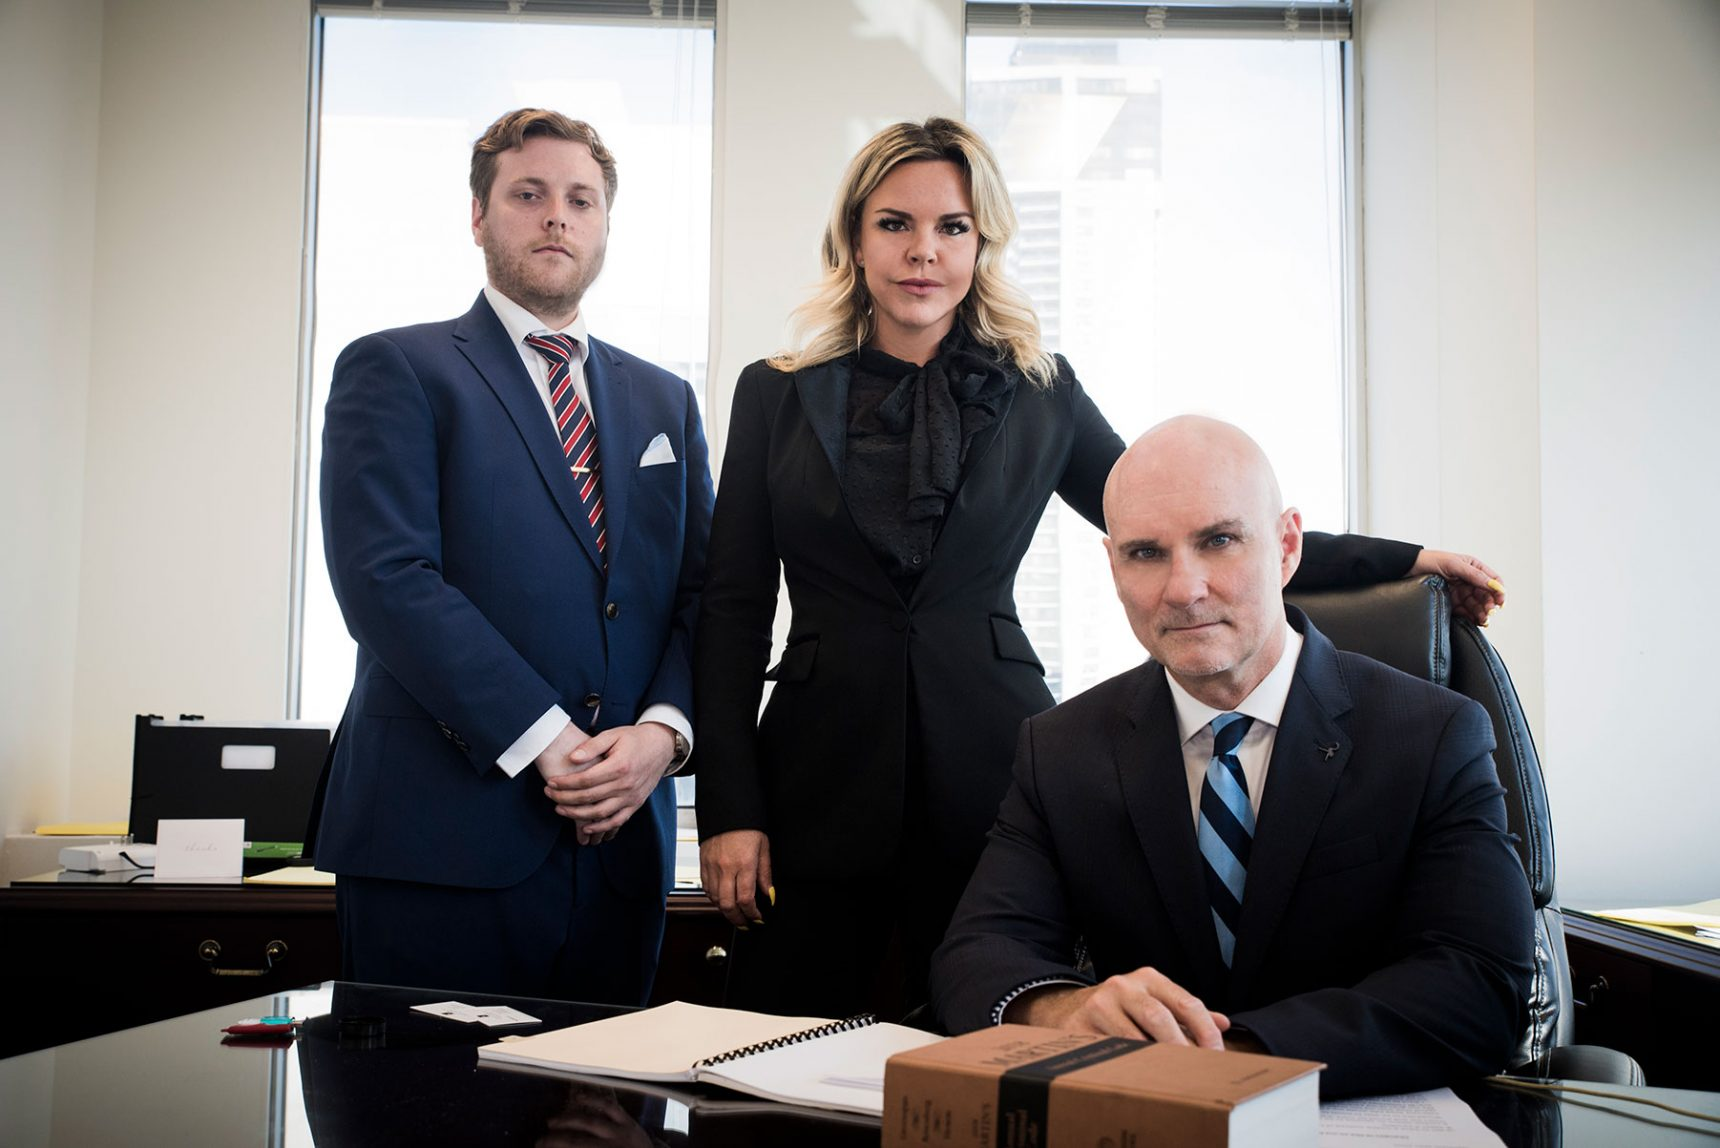 Dean Collett, Jessica Read, and Jason Alsbergas of Collett Read LLP - Criminal Defense Lawyers